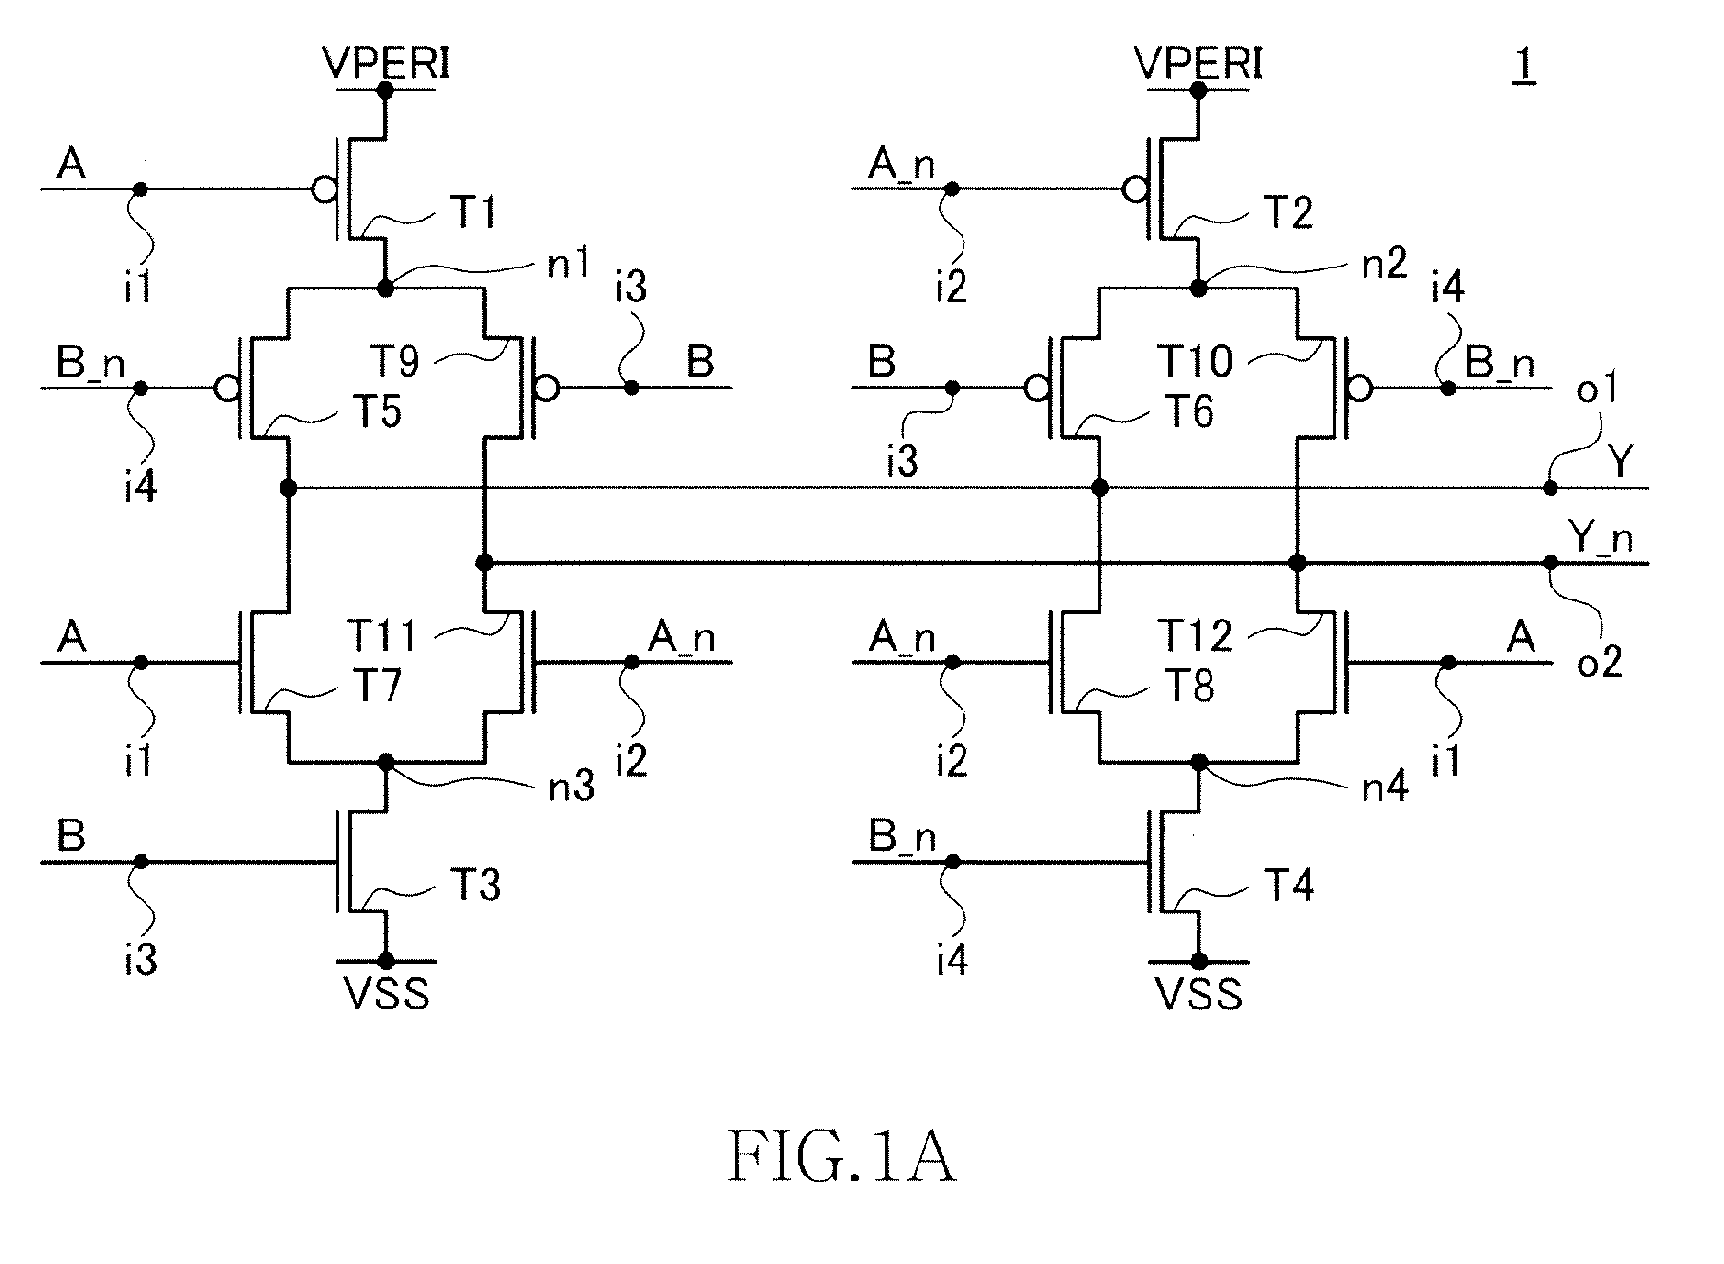 Ep2575257a1 Logic Circuit And Data Processing System Including The Diagram Of Xnor Gate Figure Imgaf001